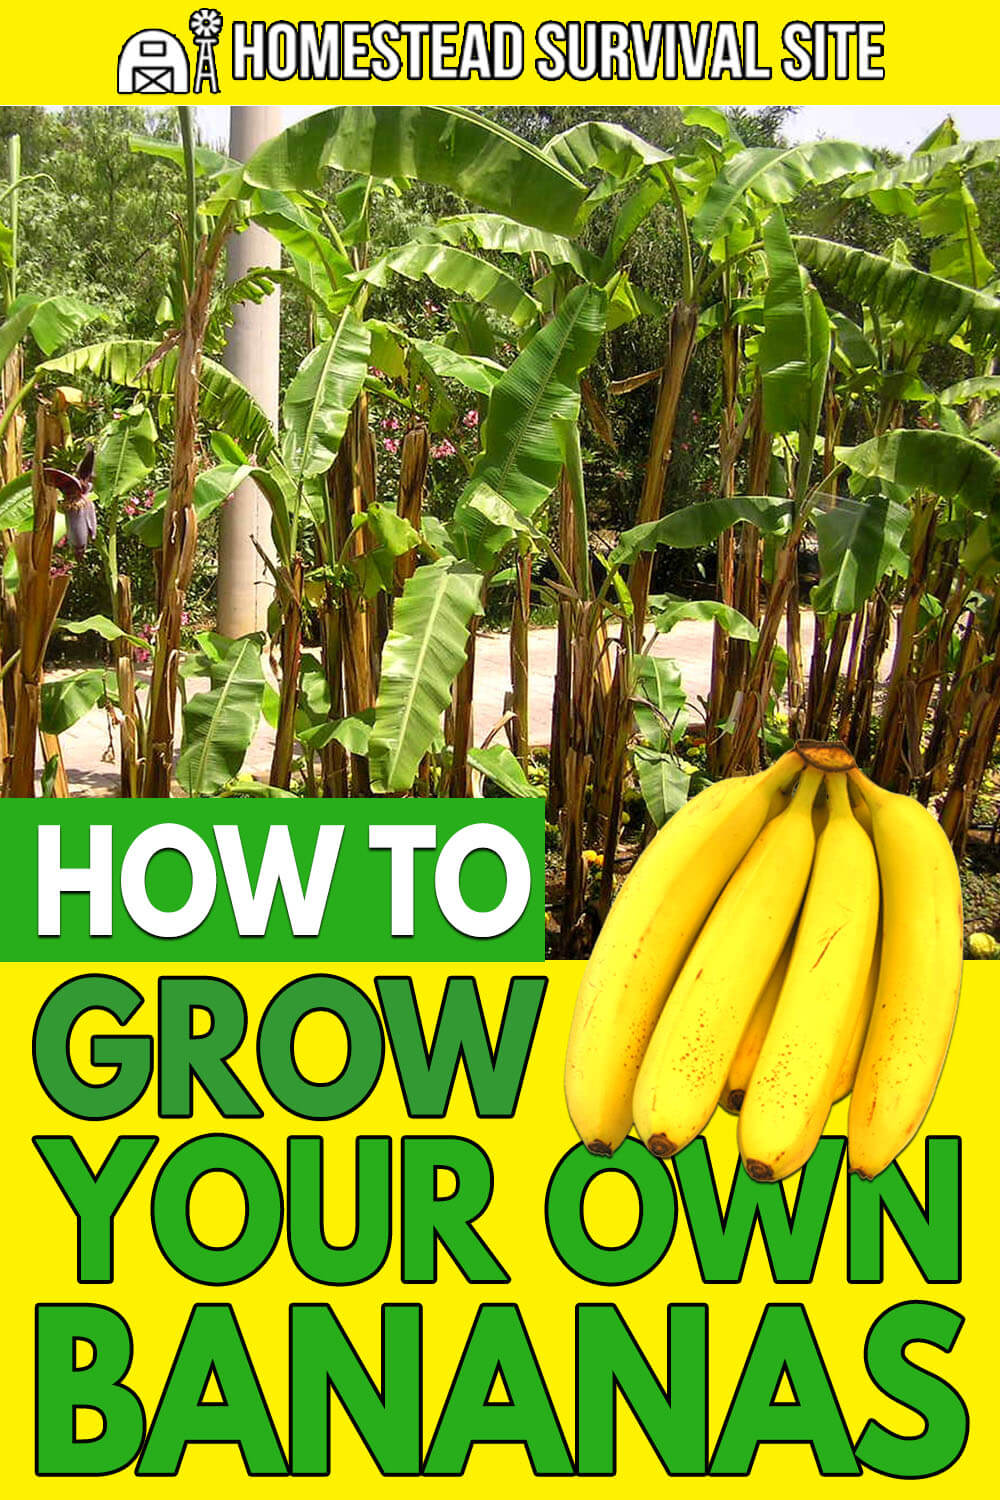 How to Grow Your Own Bananas